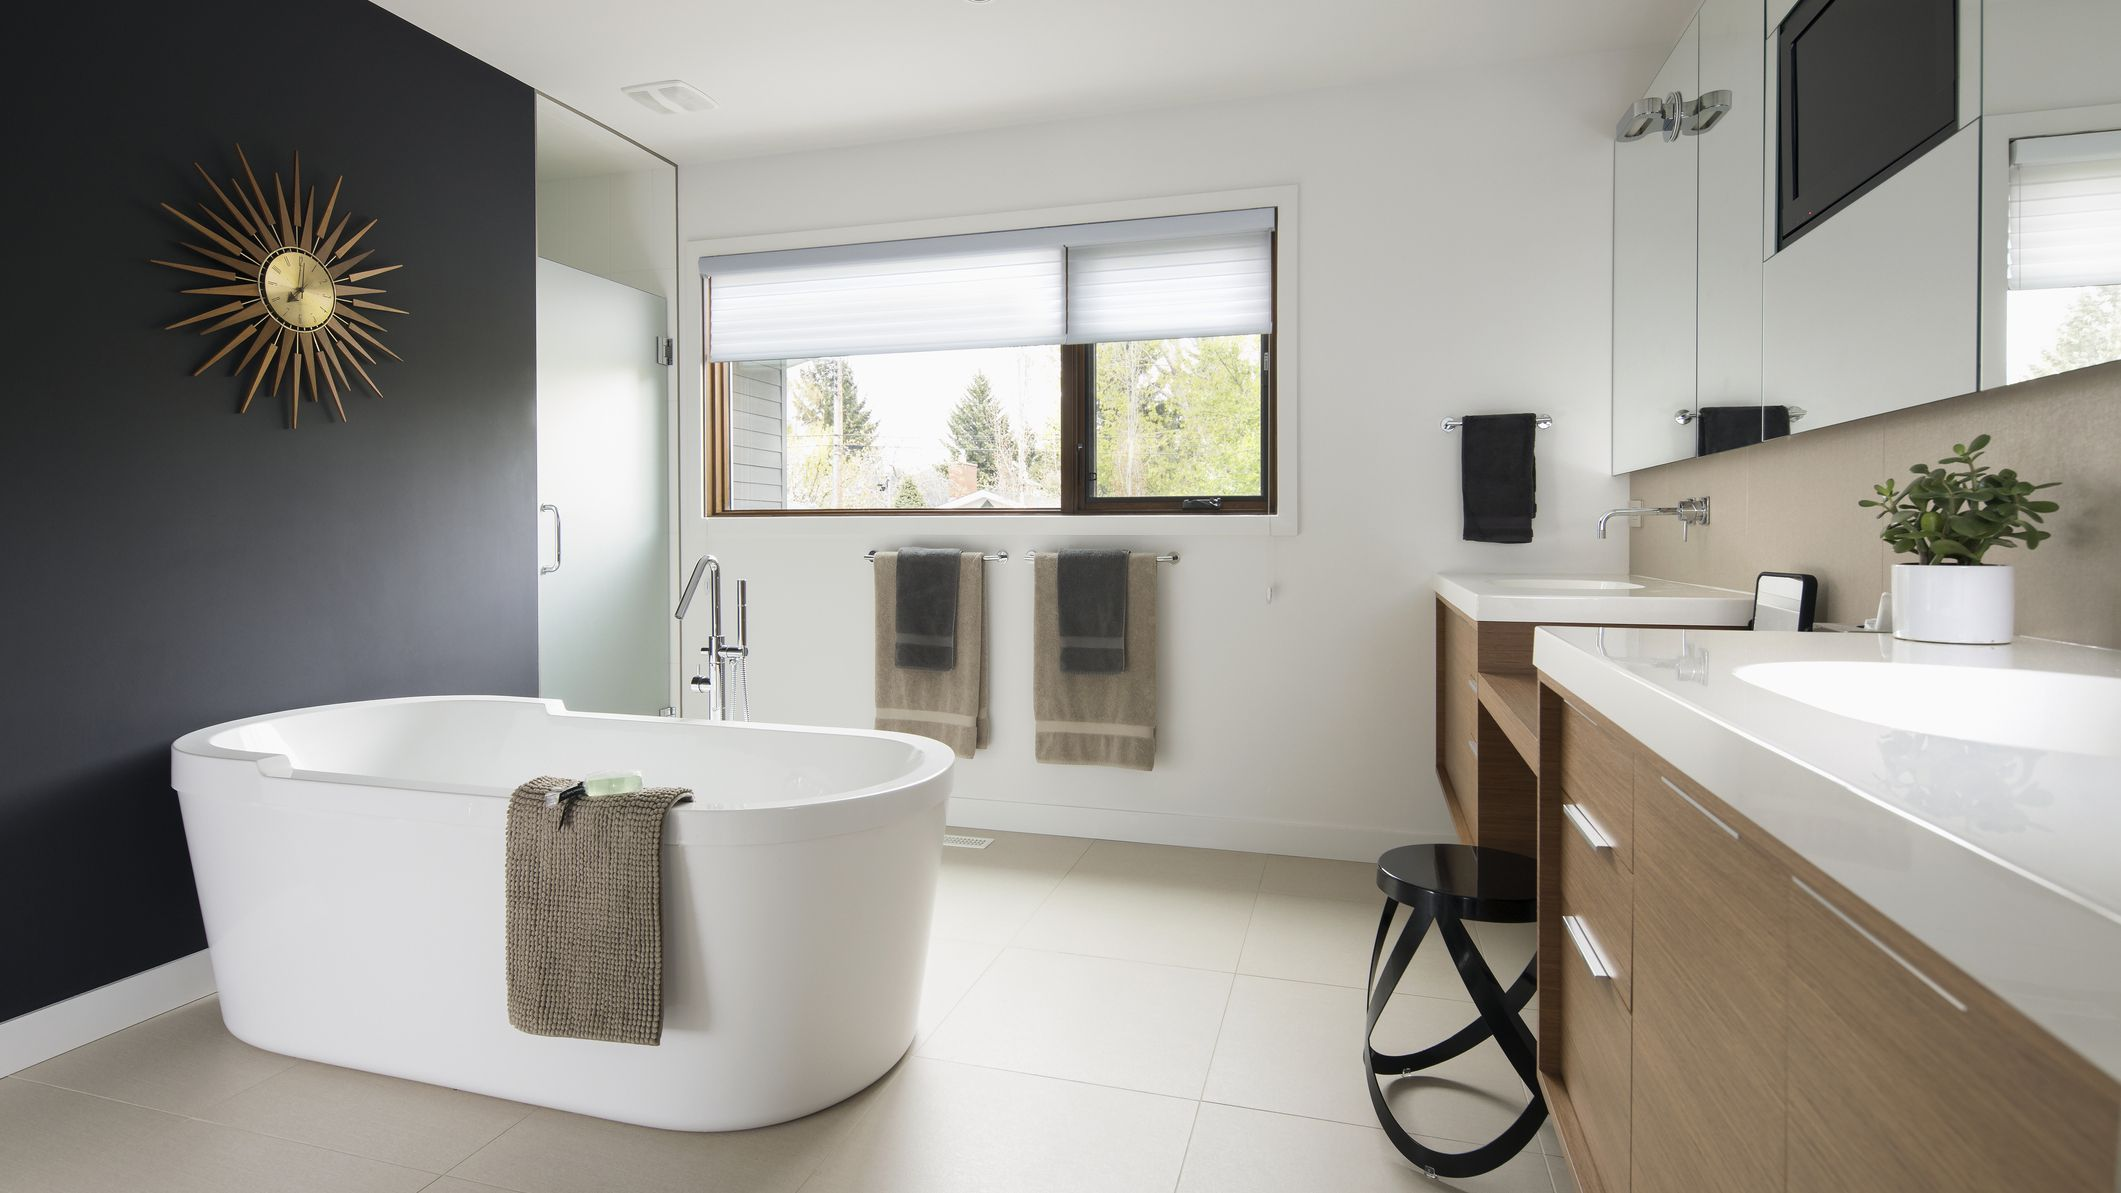 Improvements For Your Next Bathroom Remodel